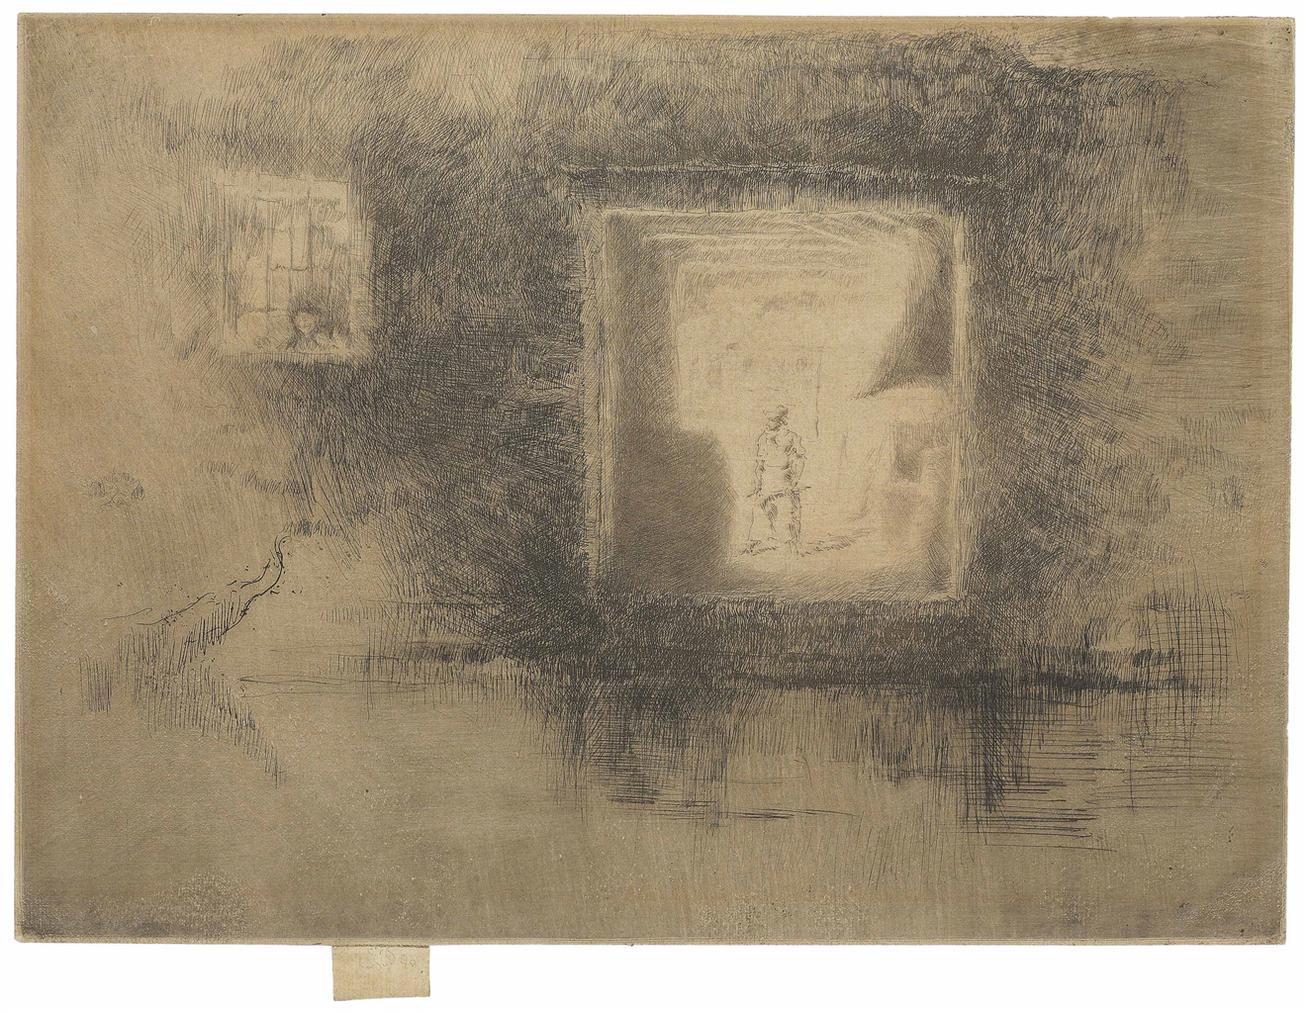 James Abbott McNeill Whistler-Nocturne: Furnace, From: The Second Venice Set-1880